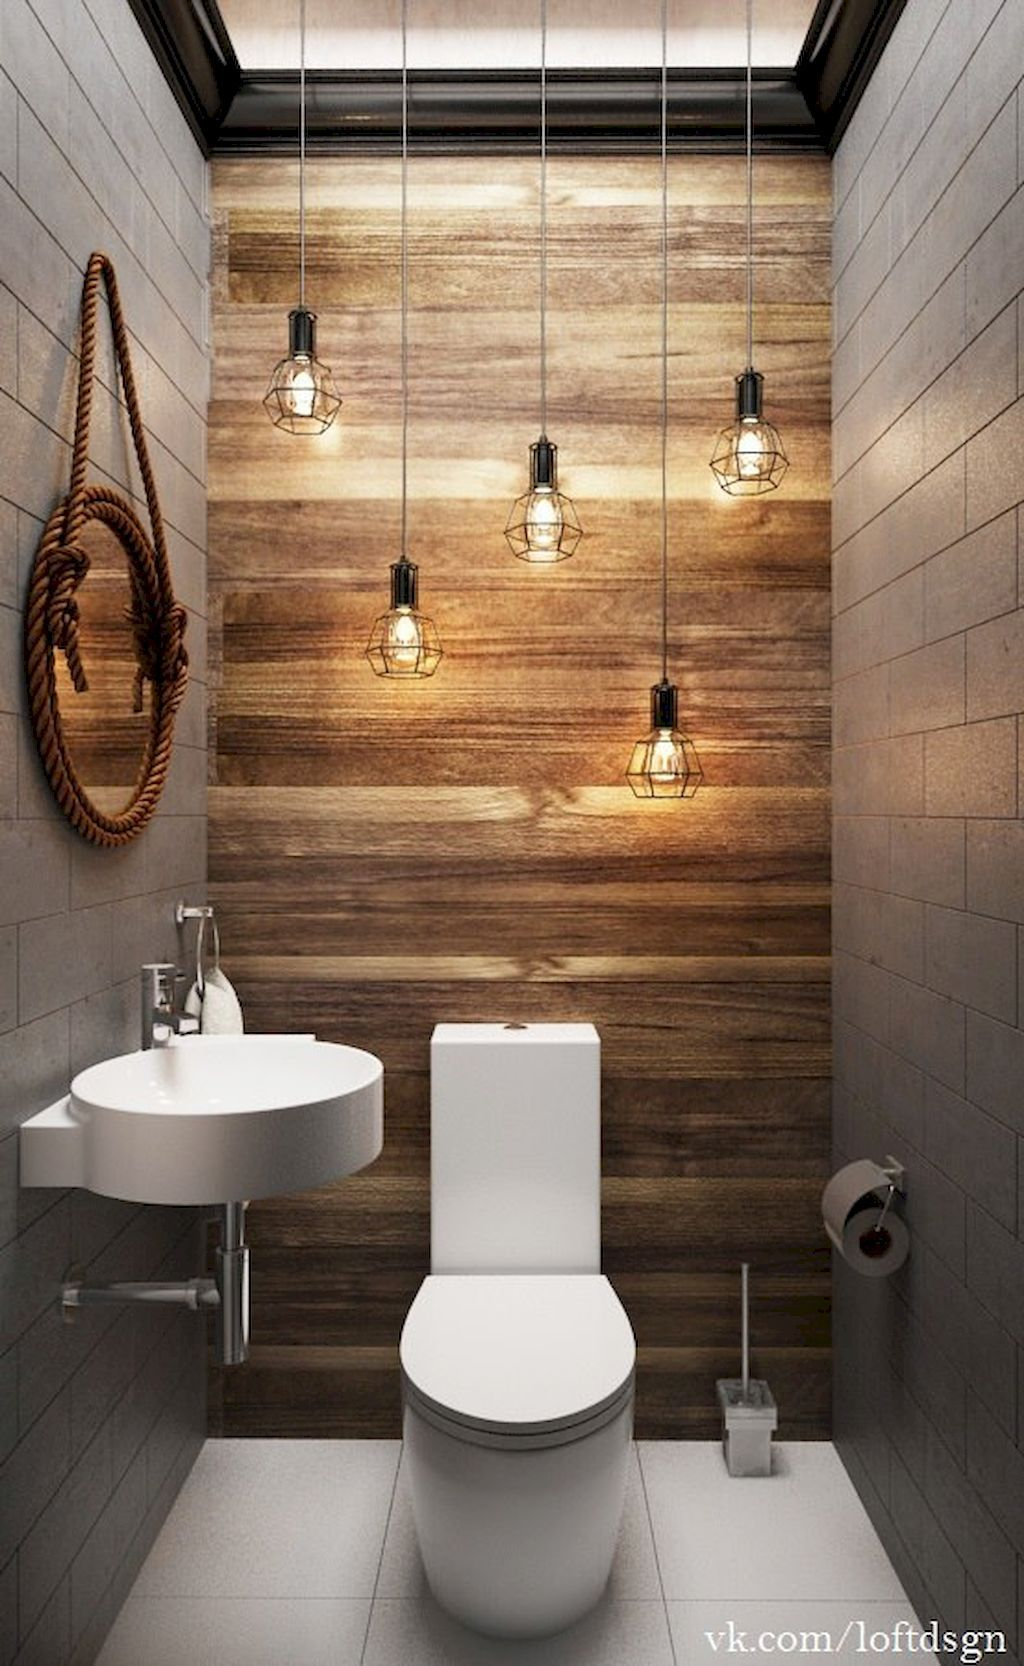 Design Bathroom Layout Online 60 Cool Farmhouse Powder Room Design Ideas With Rustic